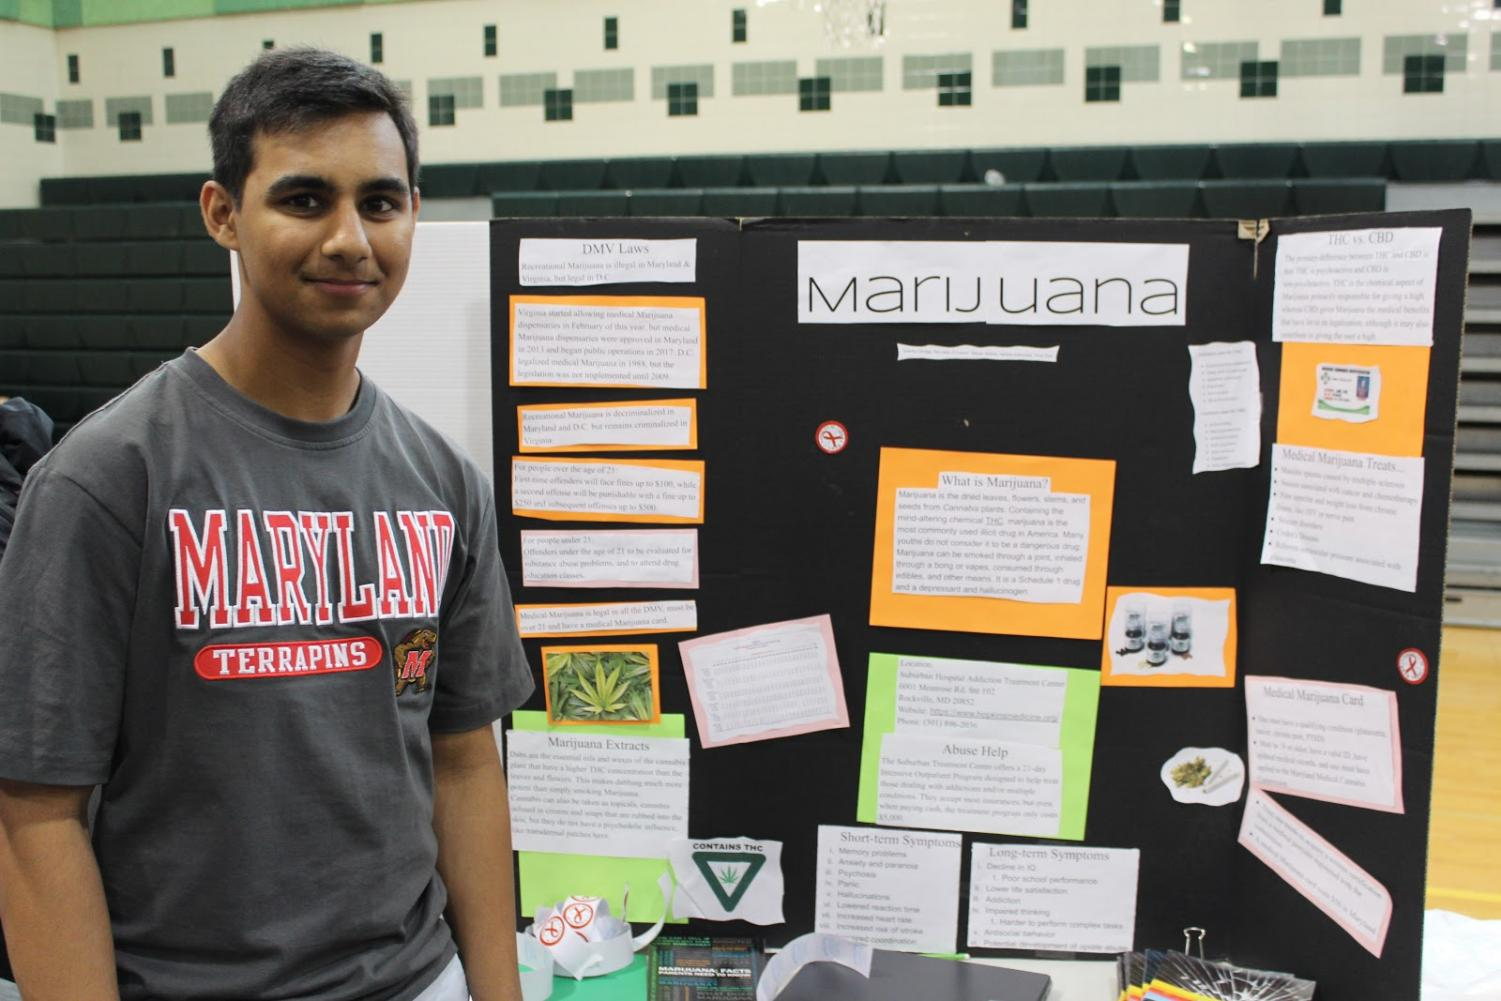 Senior Ashwin Kammula presents his project on the effects of marijuana on the body and mind.